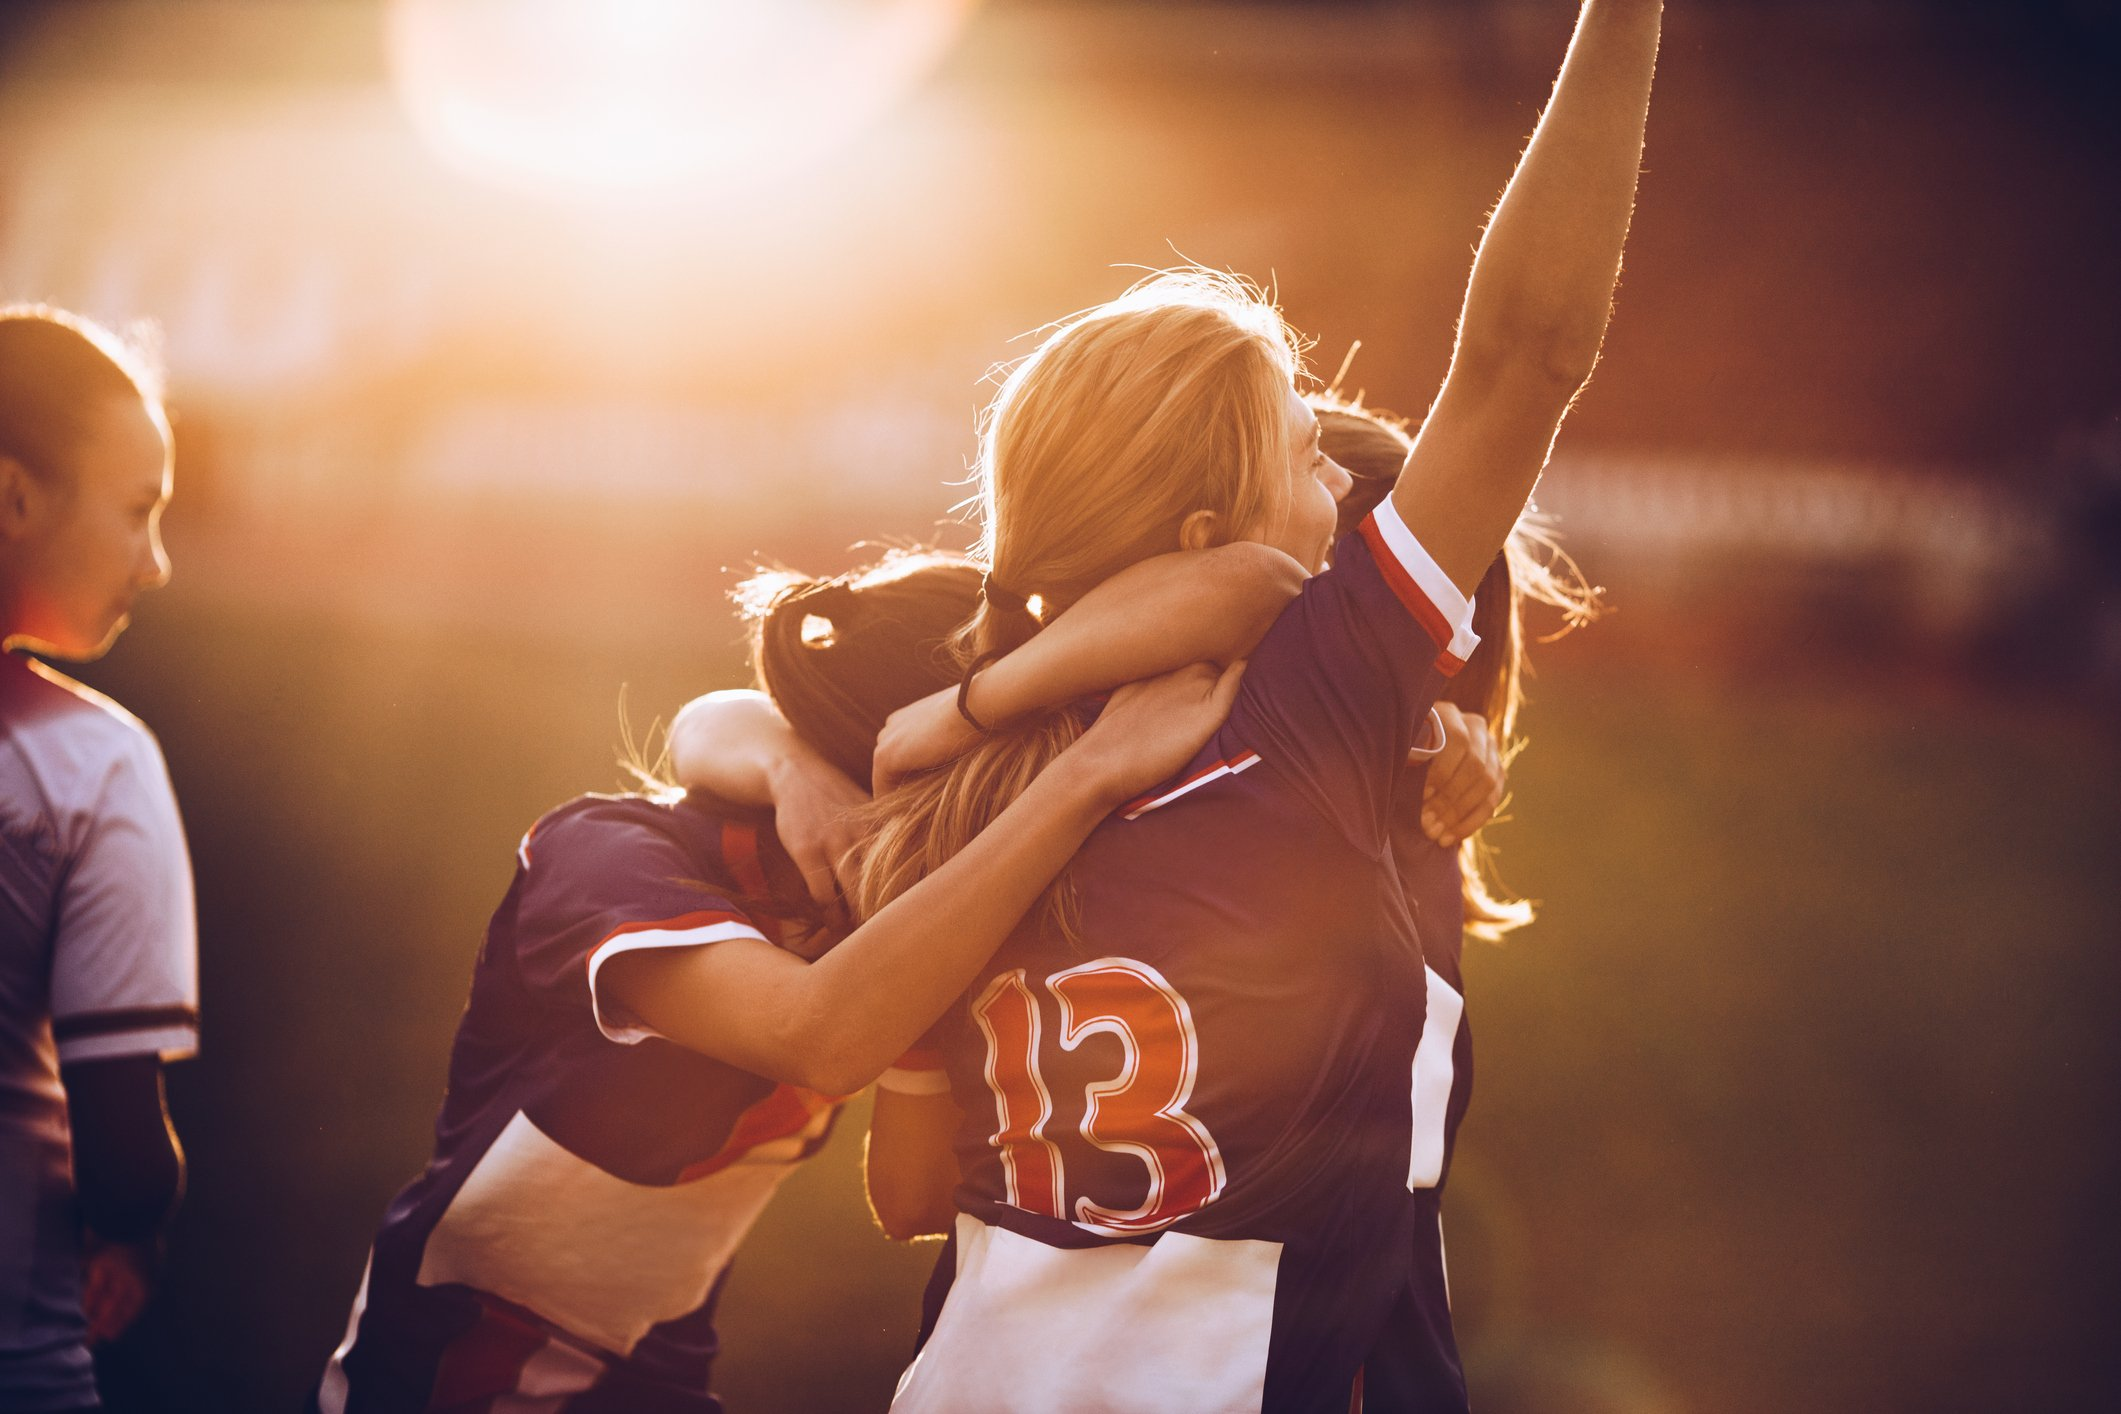 A group of girls hug each other after receiving a good sport result